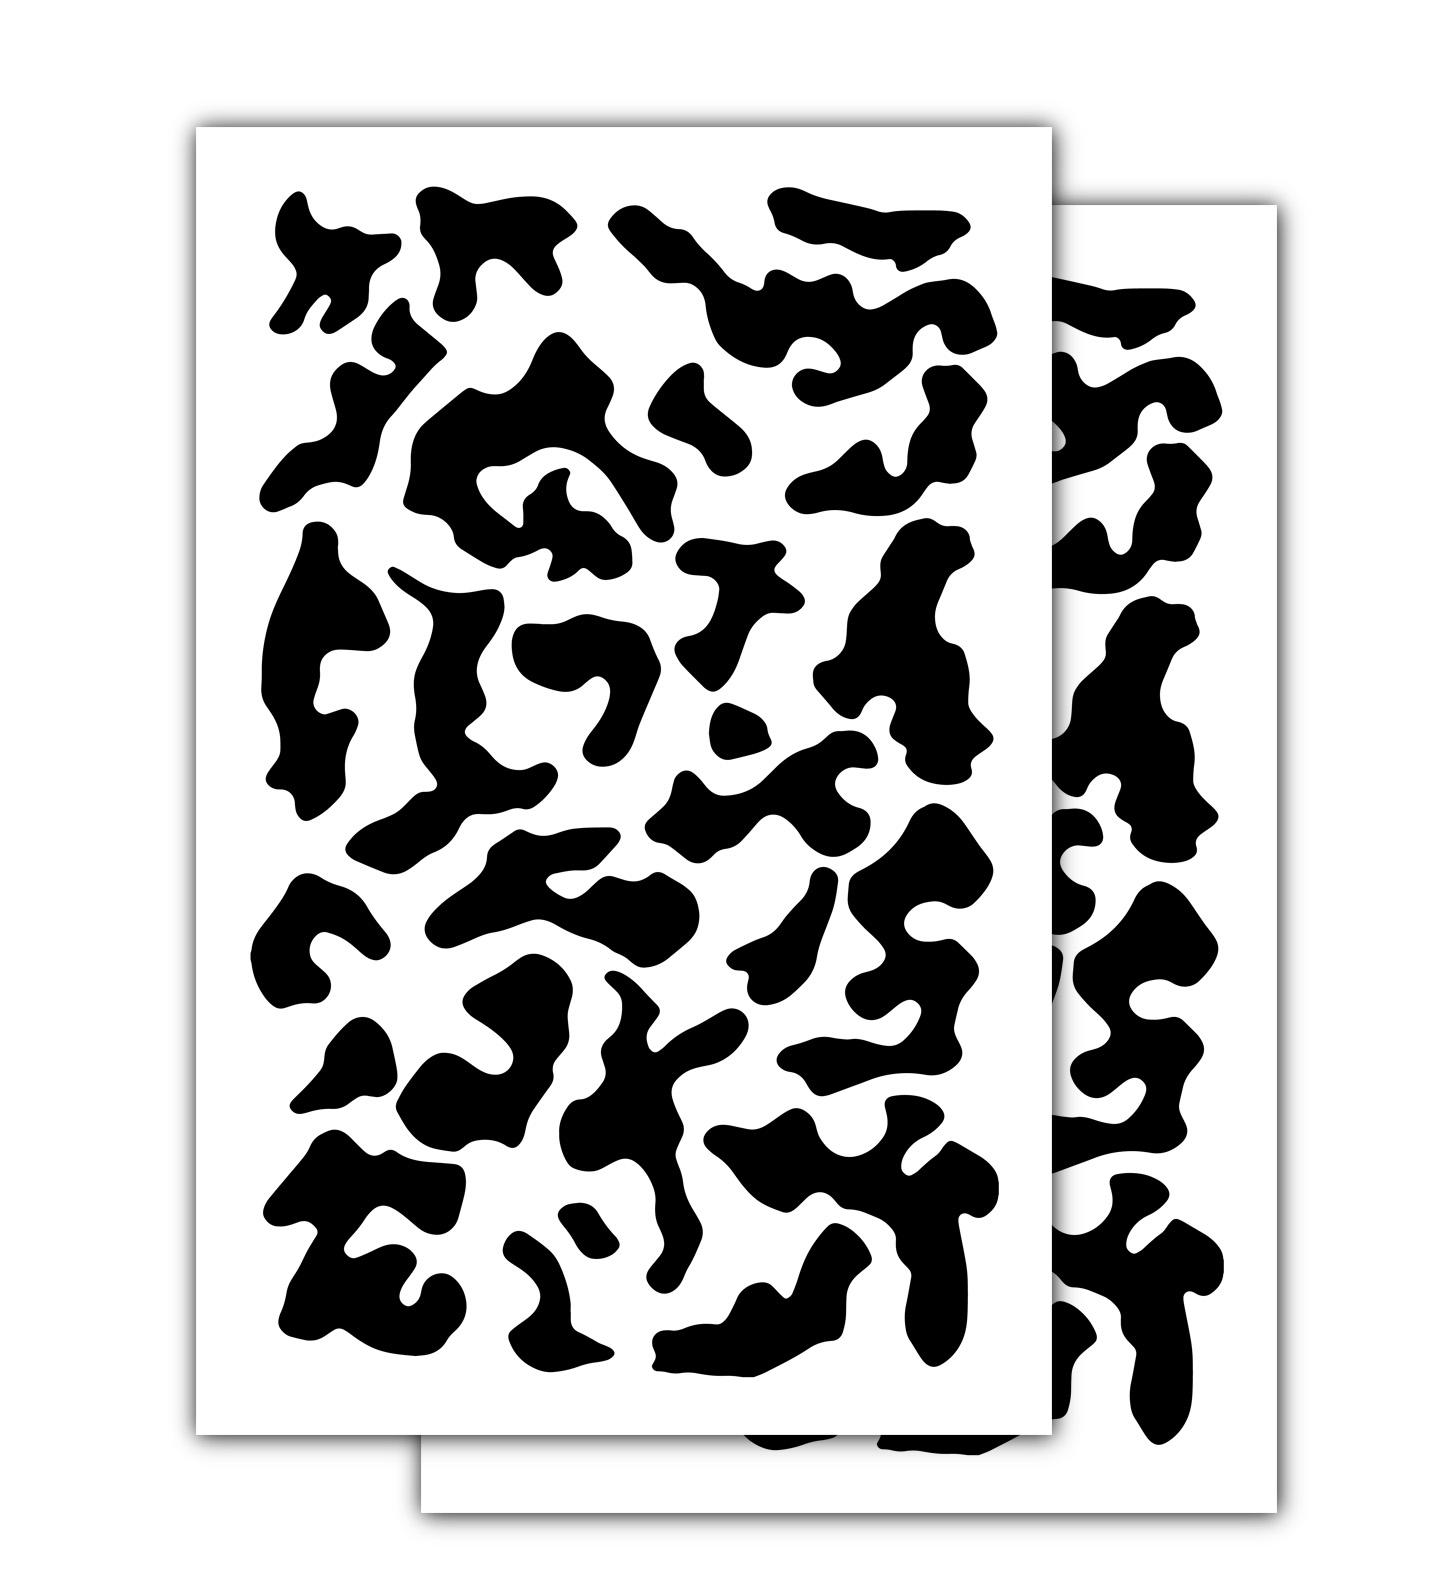 photo relating to Printable Camo Stencils referred to as 2 PACK Mylar Camo Stencils Camouflage Gun Paint Cerakote Low Armed service Multicam